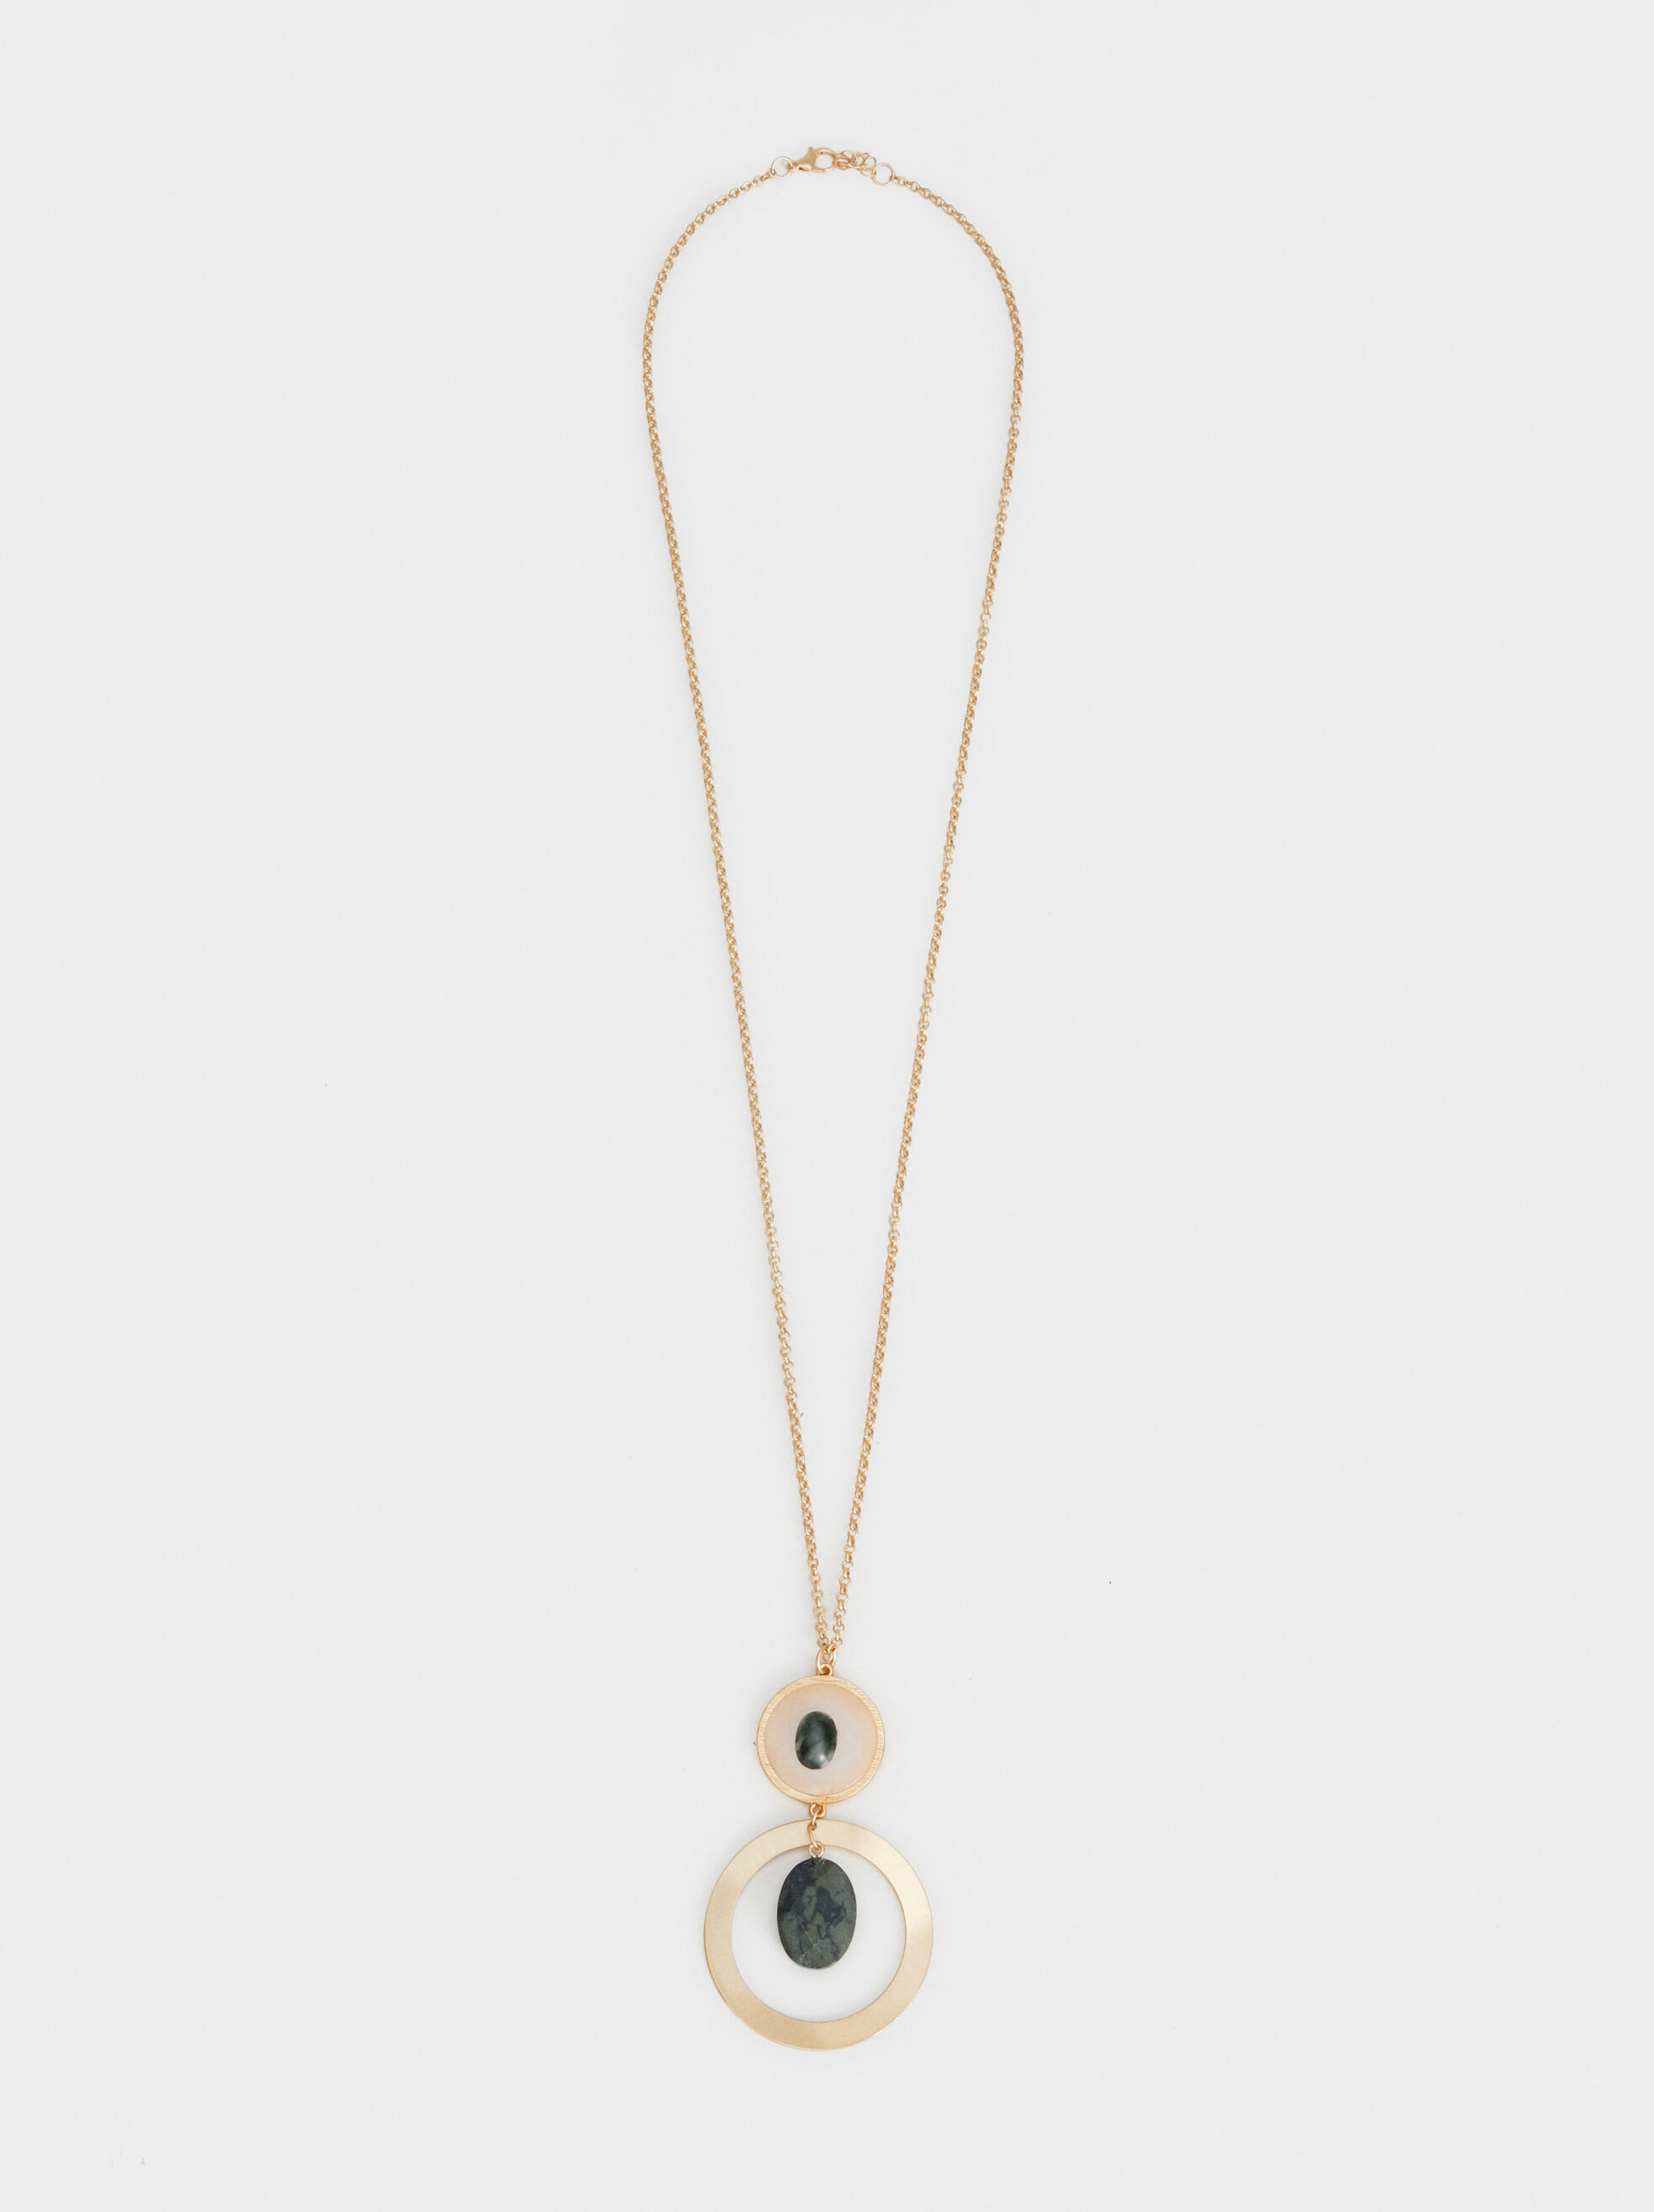 Stone Story Long Necklace With Pendant, , hi-res